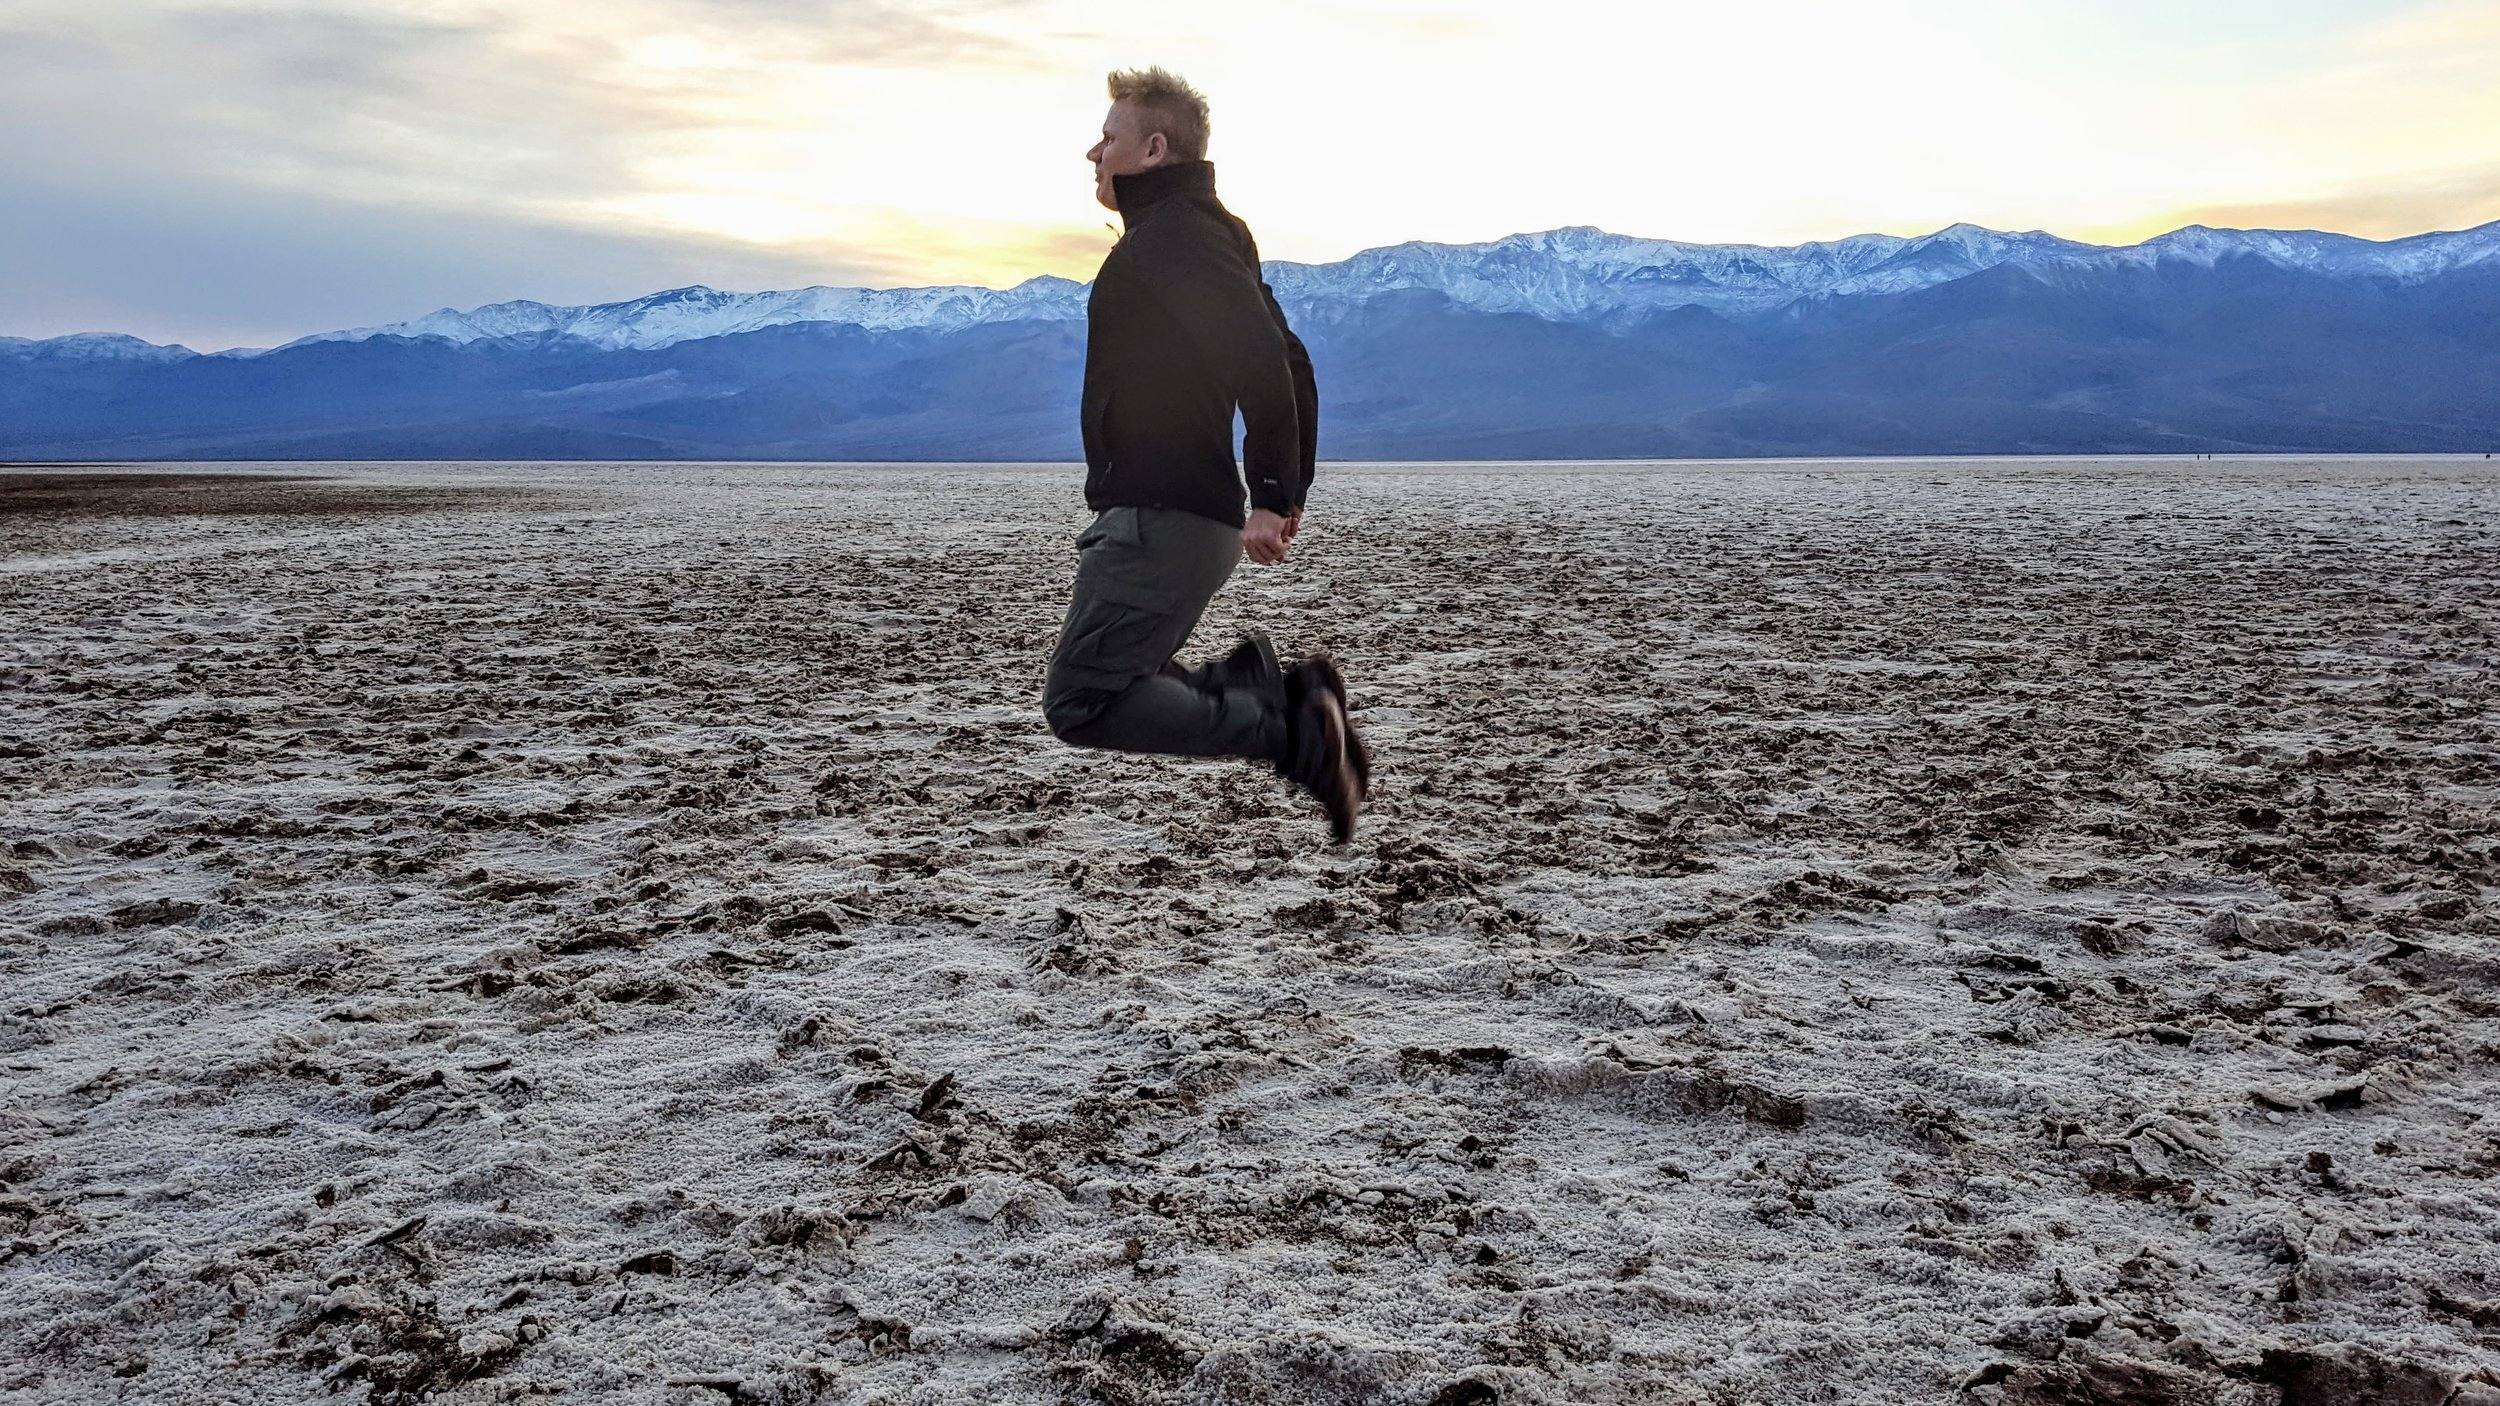 Christian getting some air at Badwater, the lowest point in the USA